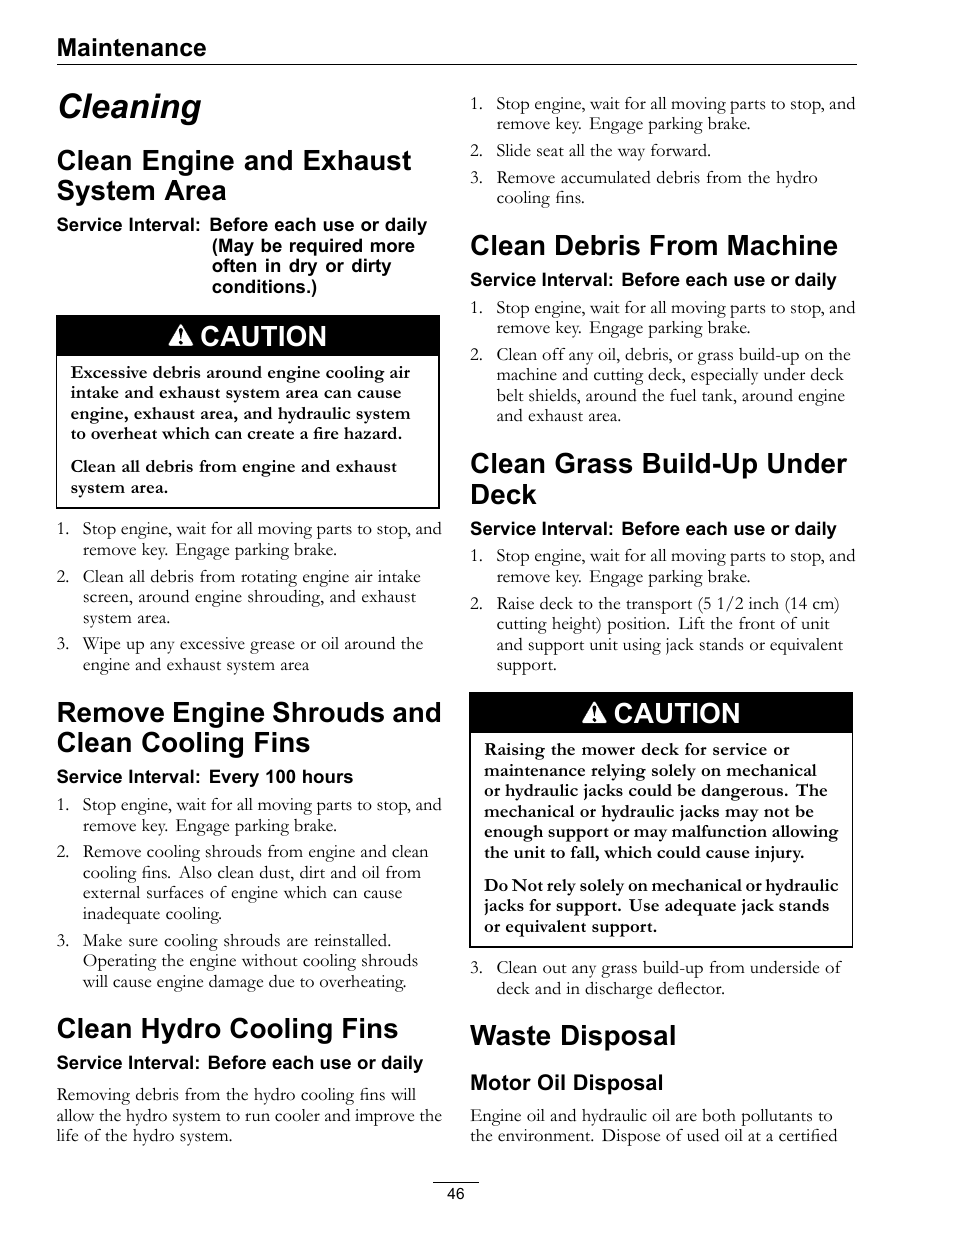 Cleaning, Clean engine and exhaust system, Area | Exmark